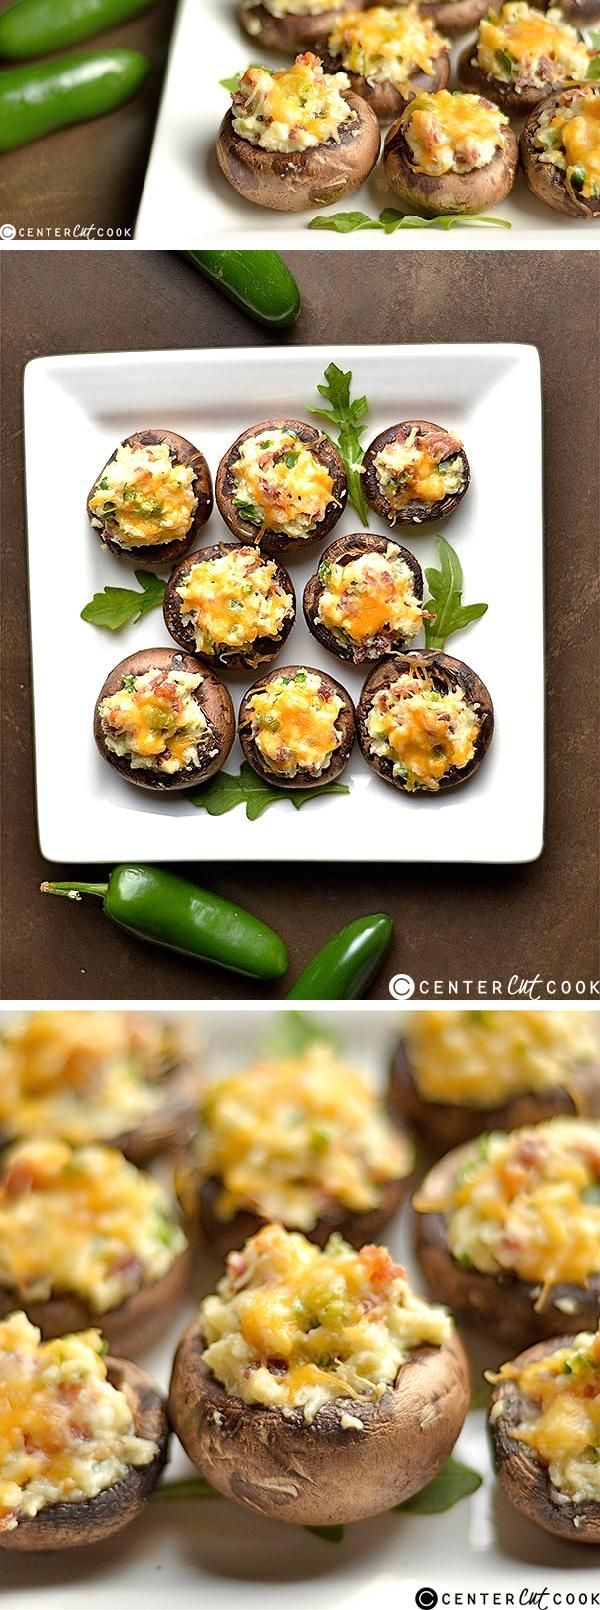 All of the yumminess of a JALAPEñO POPPER STUFFED inside a mushroom! Super easy and delicious appetizer that is sure to be a crowd pleaser!